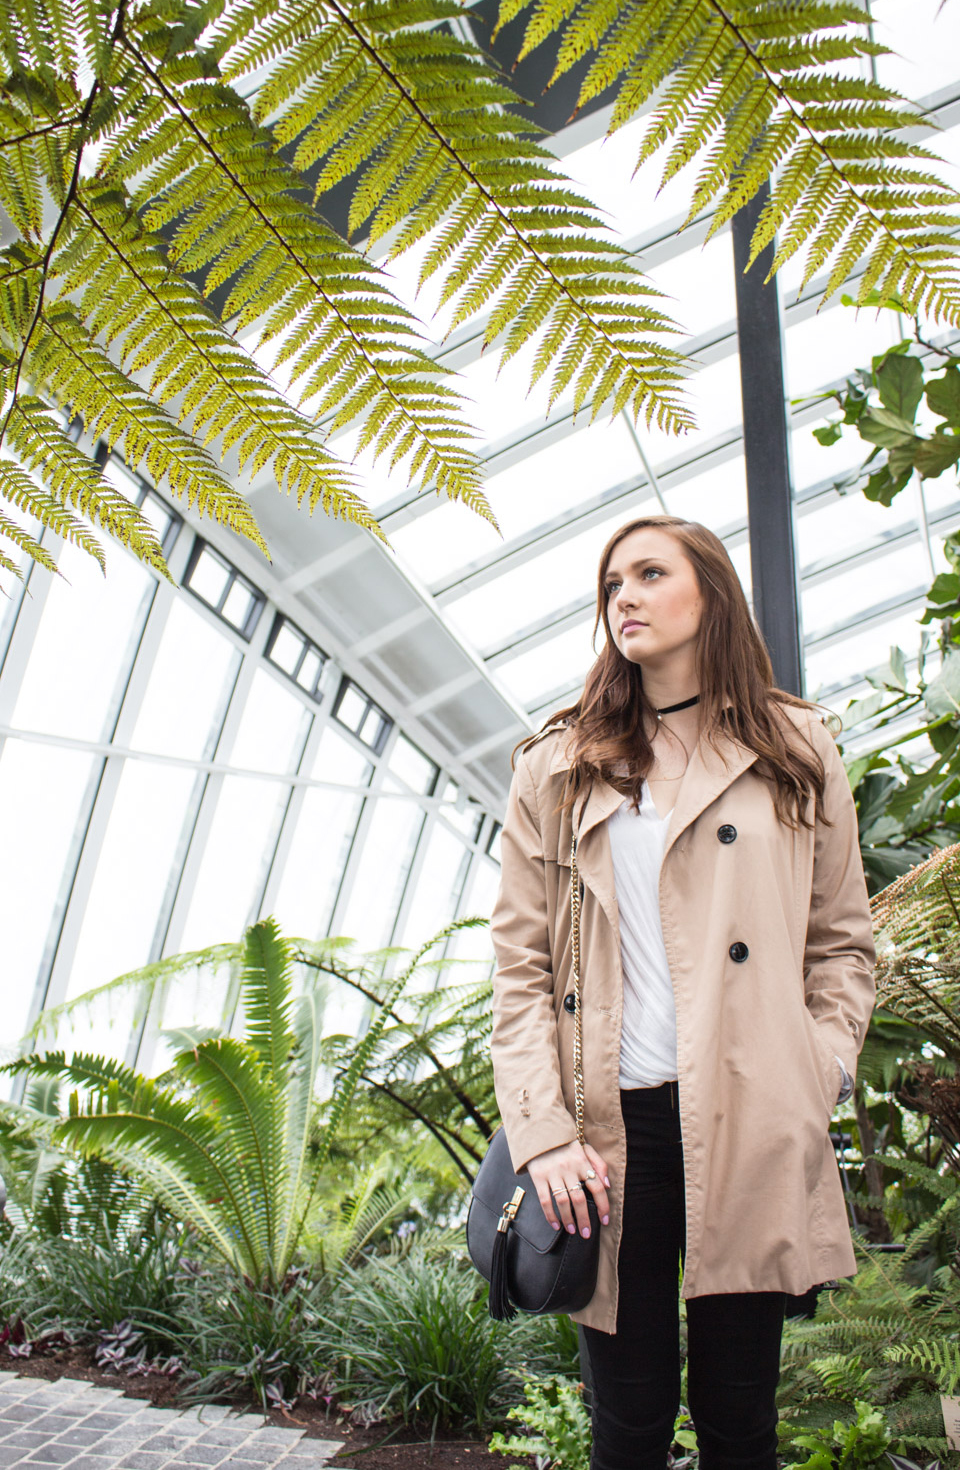 Jungle In The Sky // The Casual Trench // Sky Garden London // Weekend OOTD WIWT FASHION STYLE BLOGGER // Lauren Rose